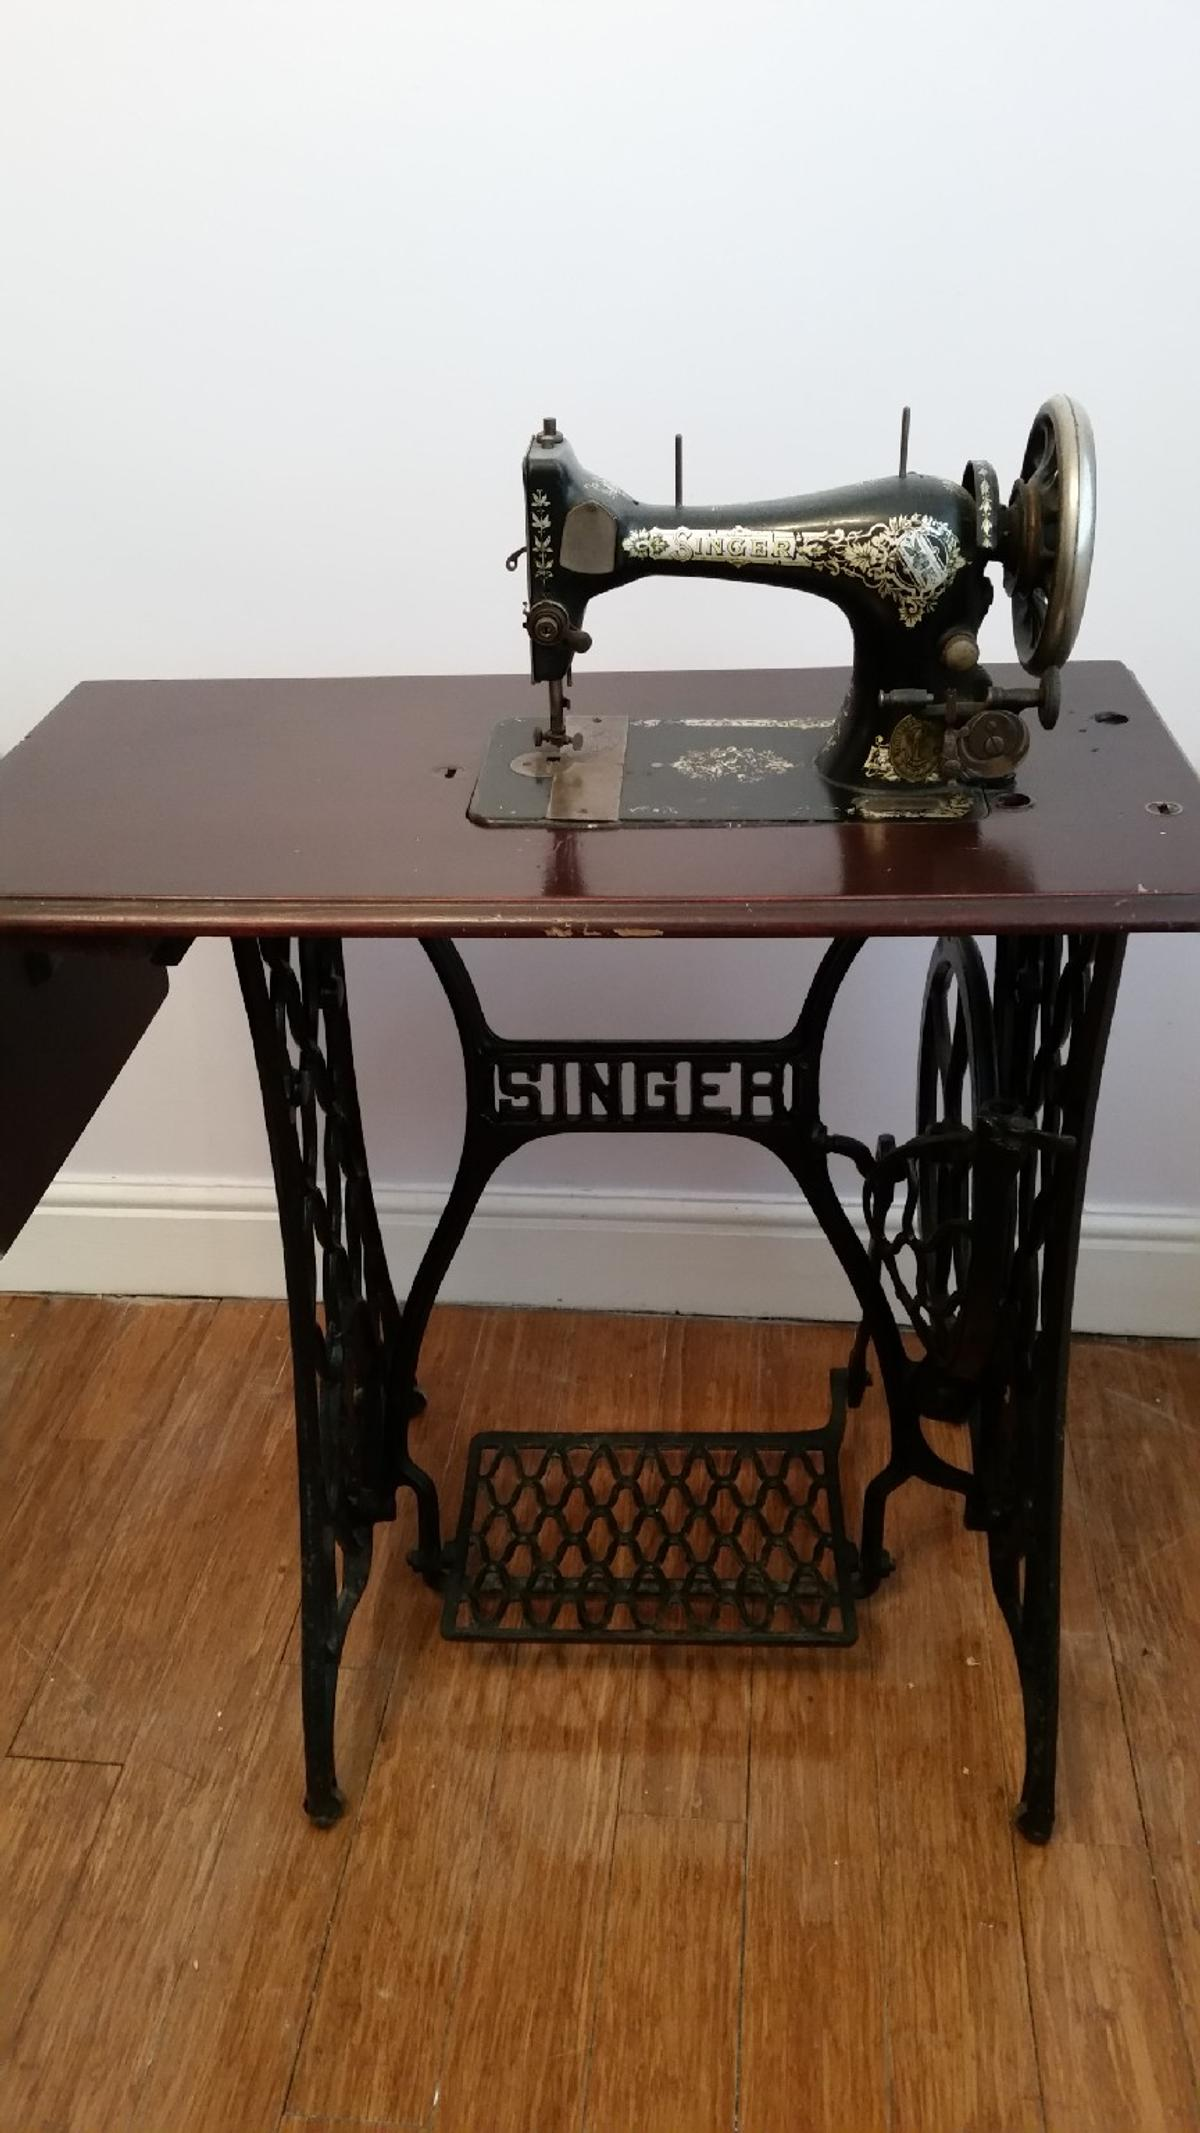 Old fashioned singer sewing machine